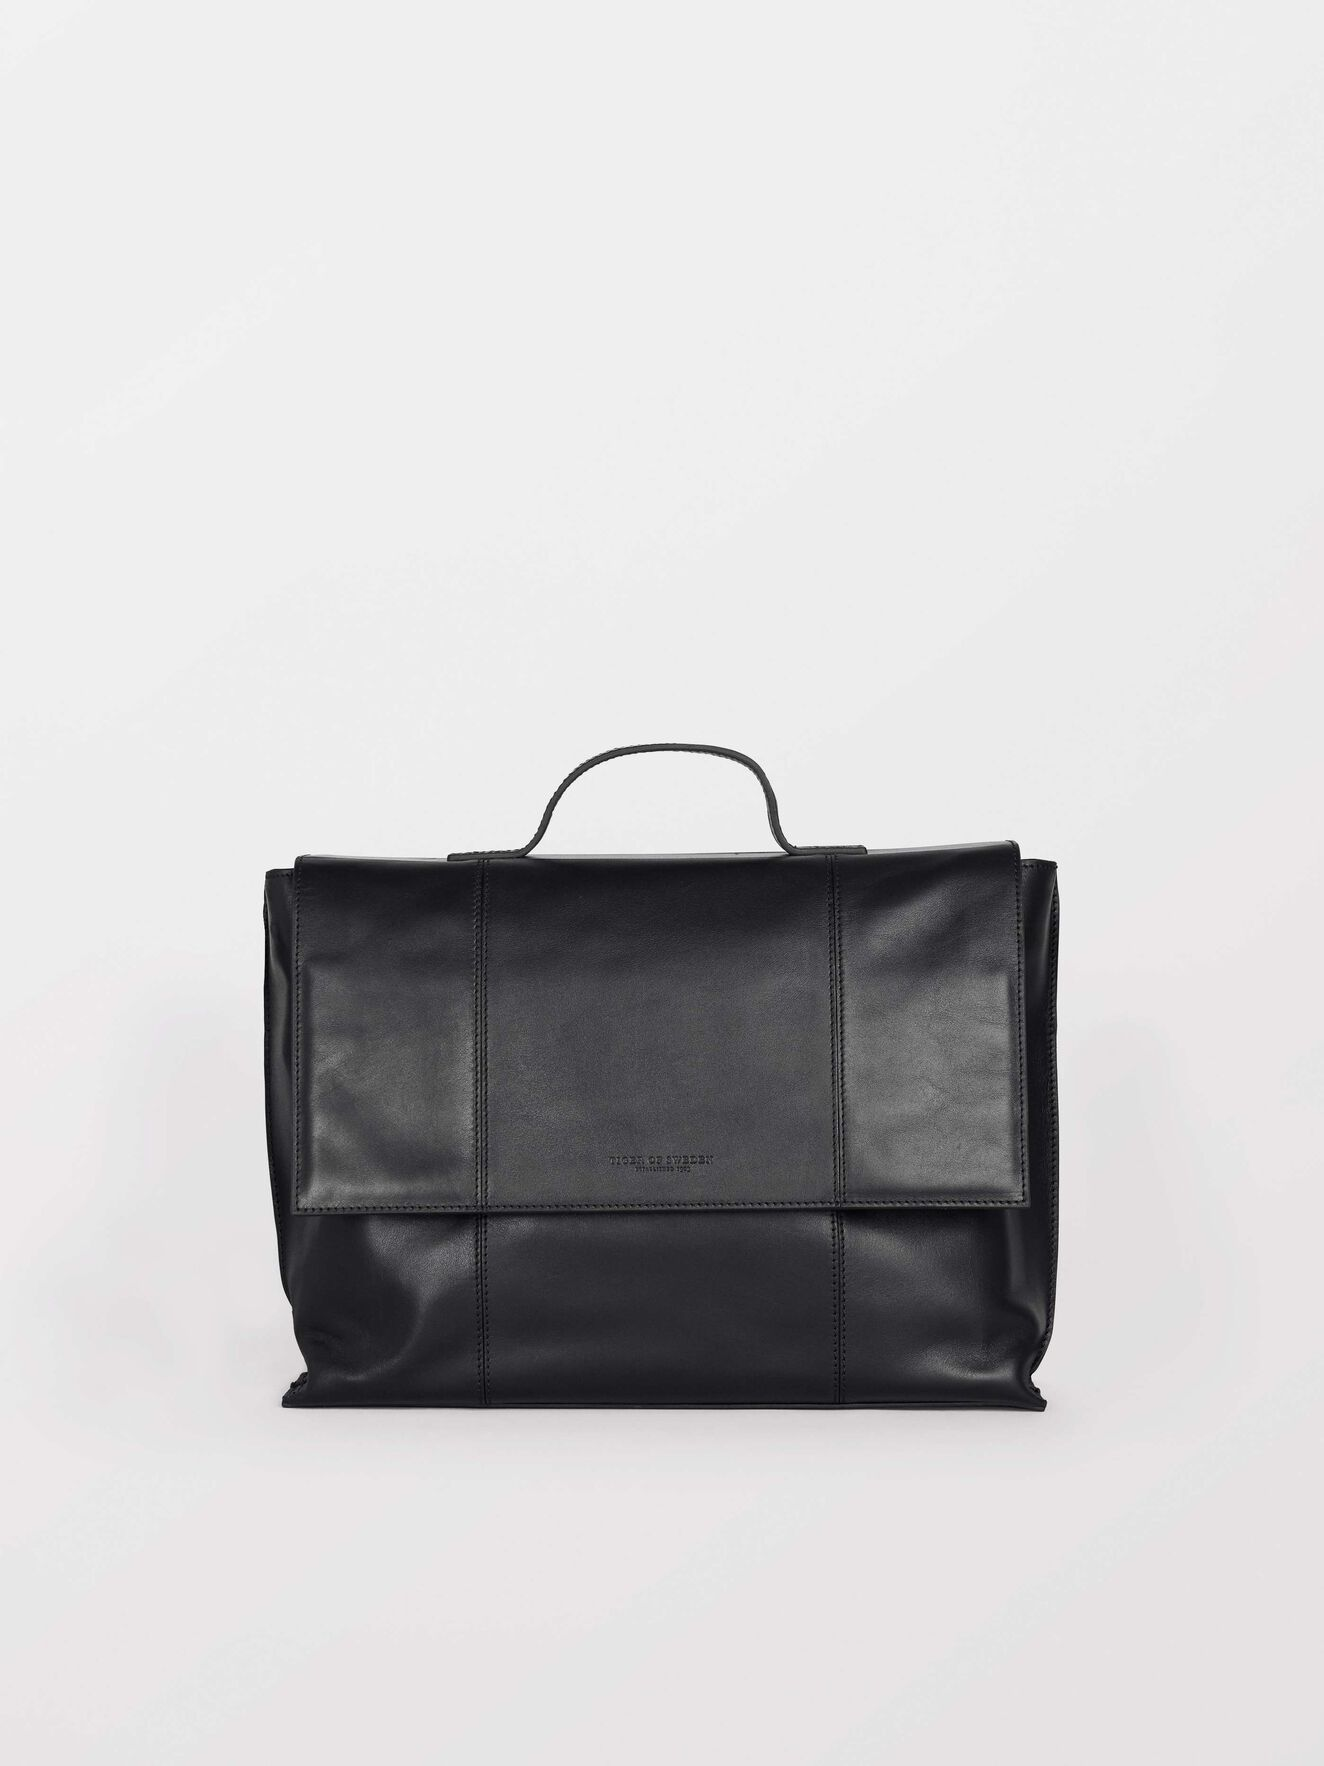 Vasatana 2 Bag in Black from Tiger of Sweden